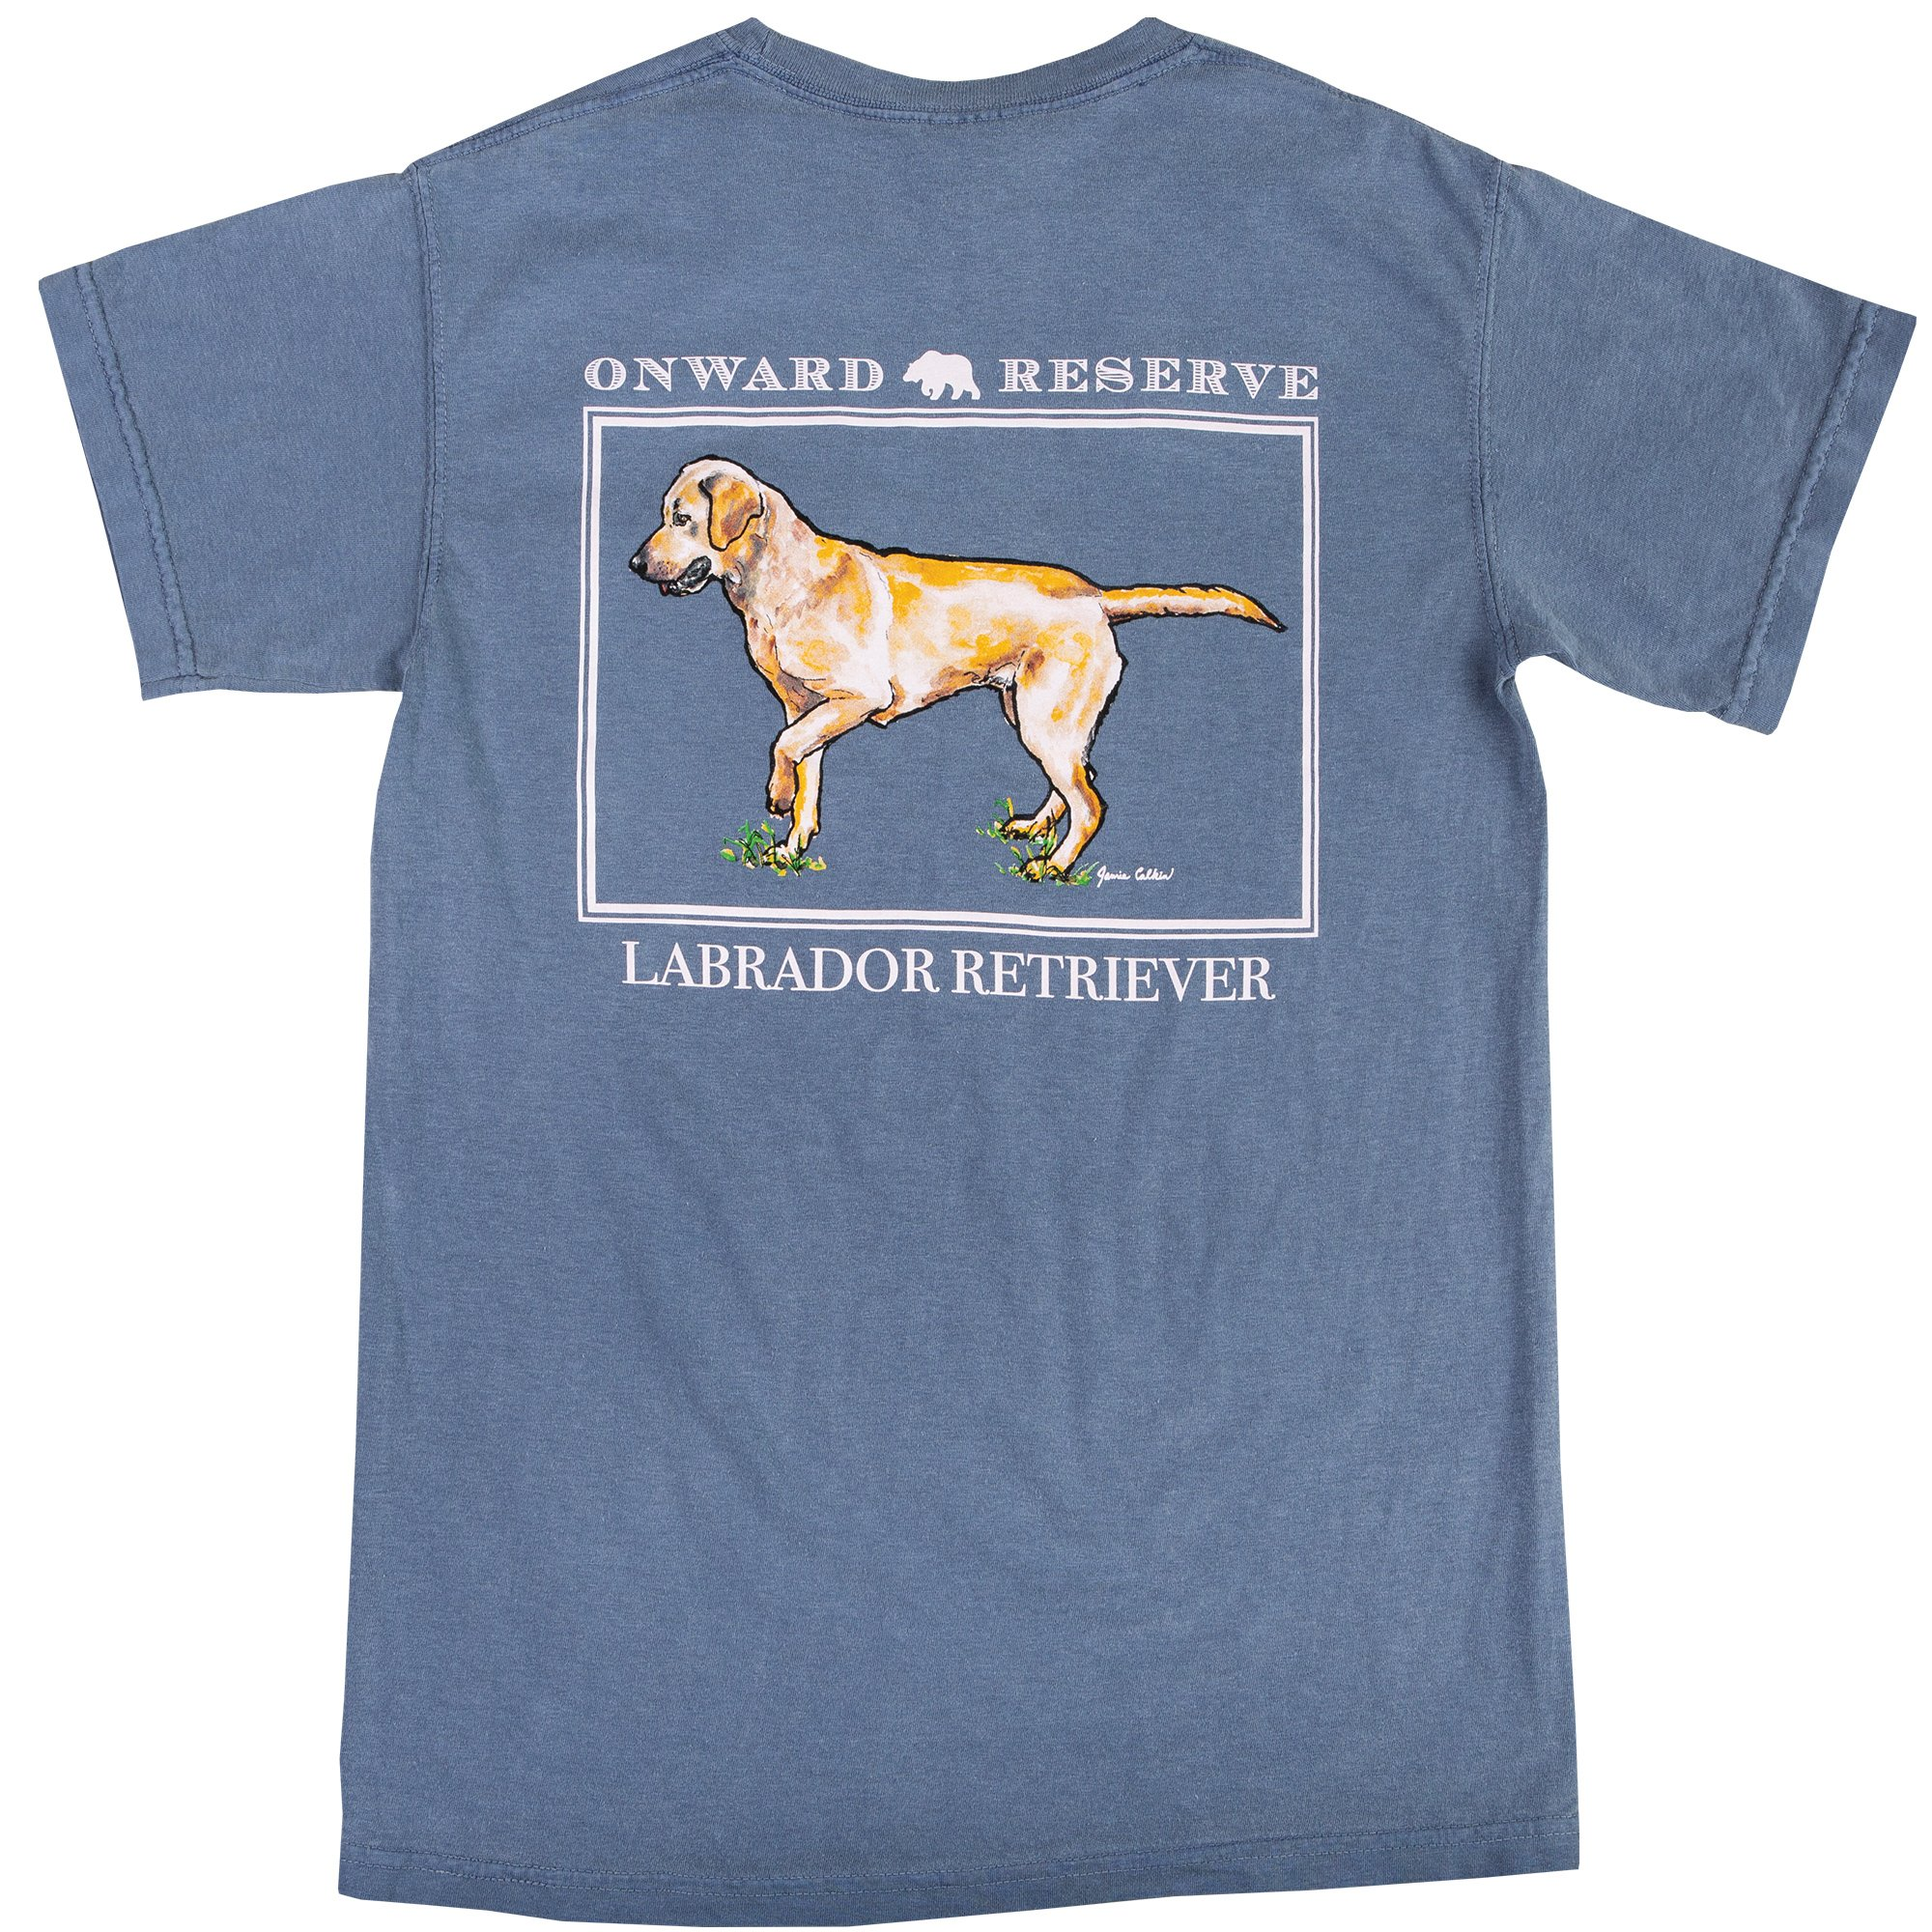 OR-Jamie-Tee-SS-Labrador-Retriever-Blue-Back.jpg